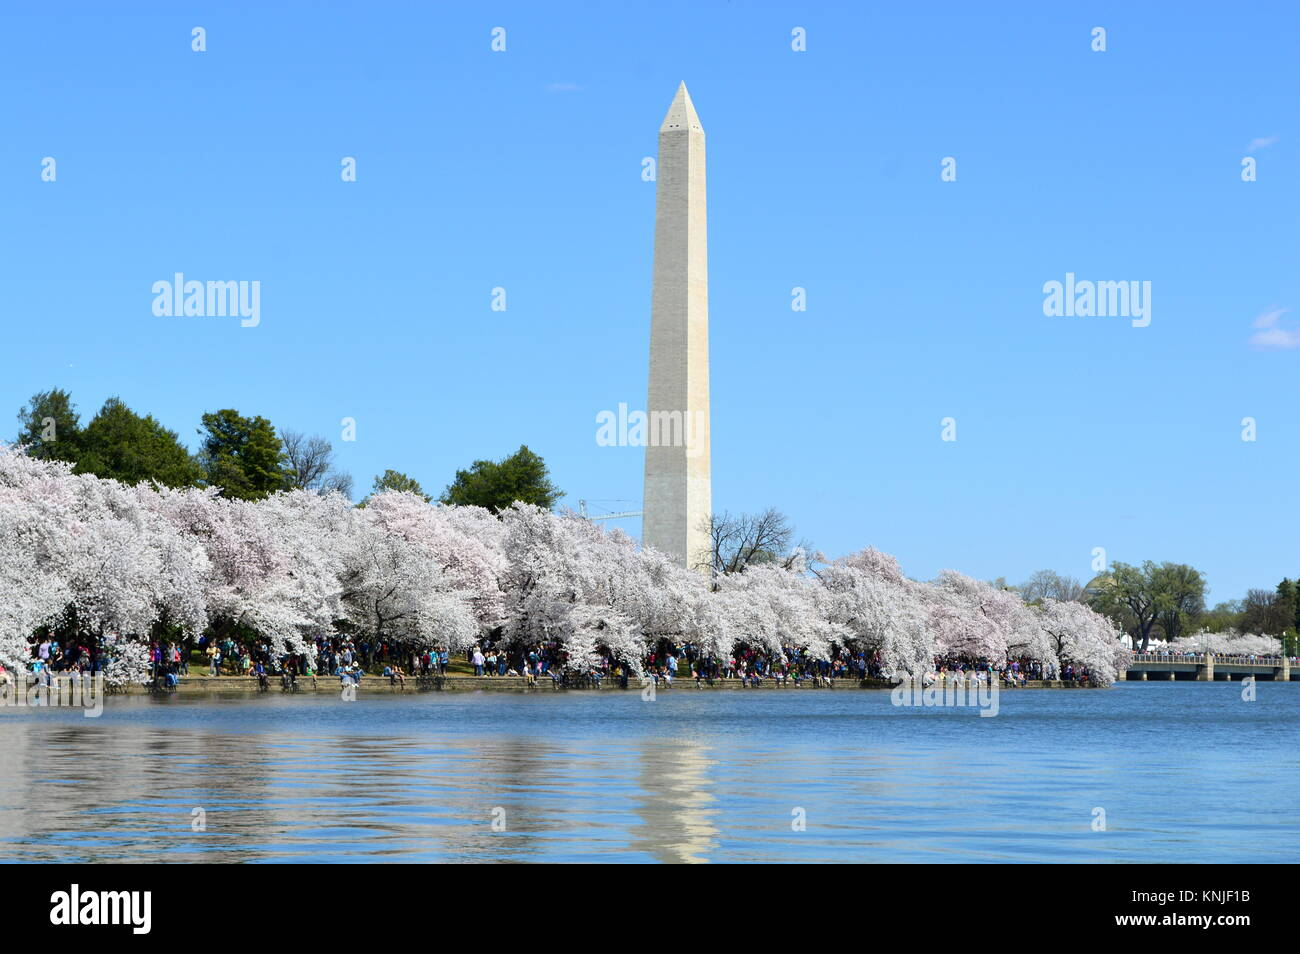 Washington DC, Columbia, EE.UU. - 11 de abril de 2015: Washington-DC-monumento Cherry Blossom Imagen De Stock